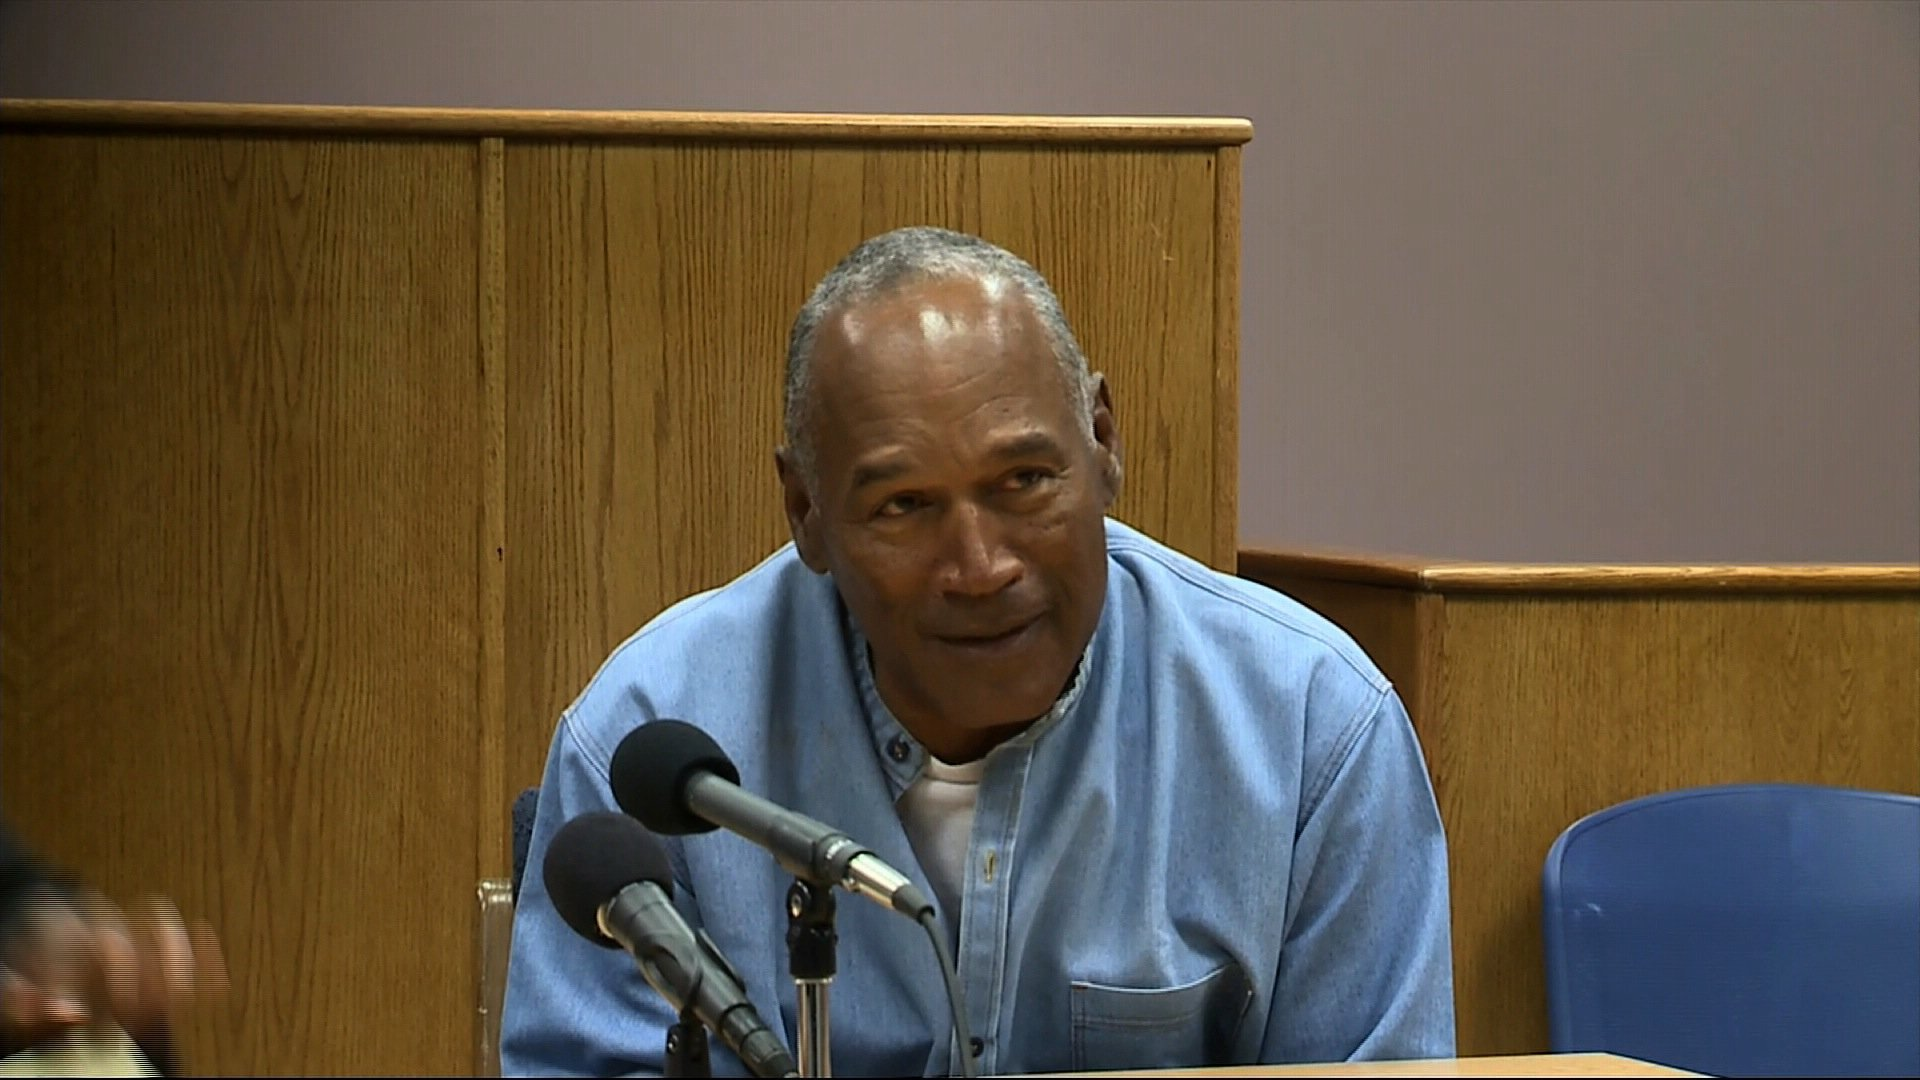 OJ Simpson to be freed from prison after nine years